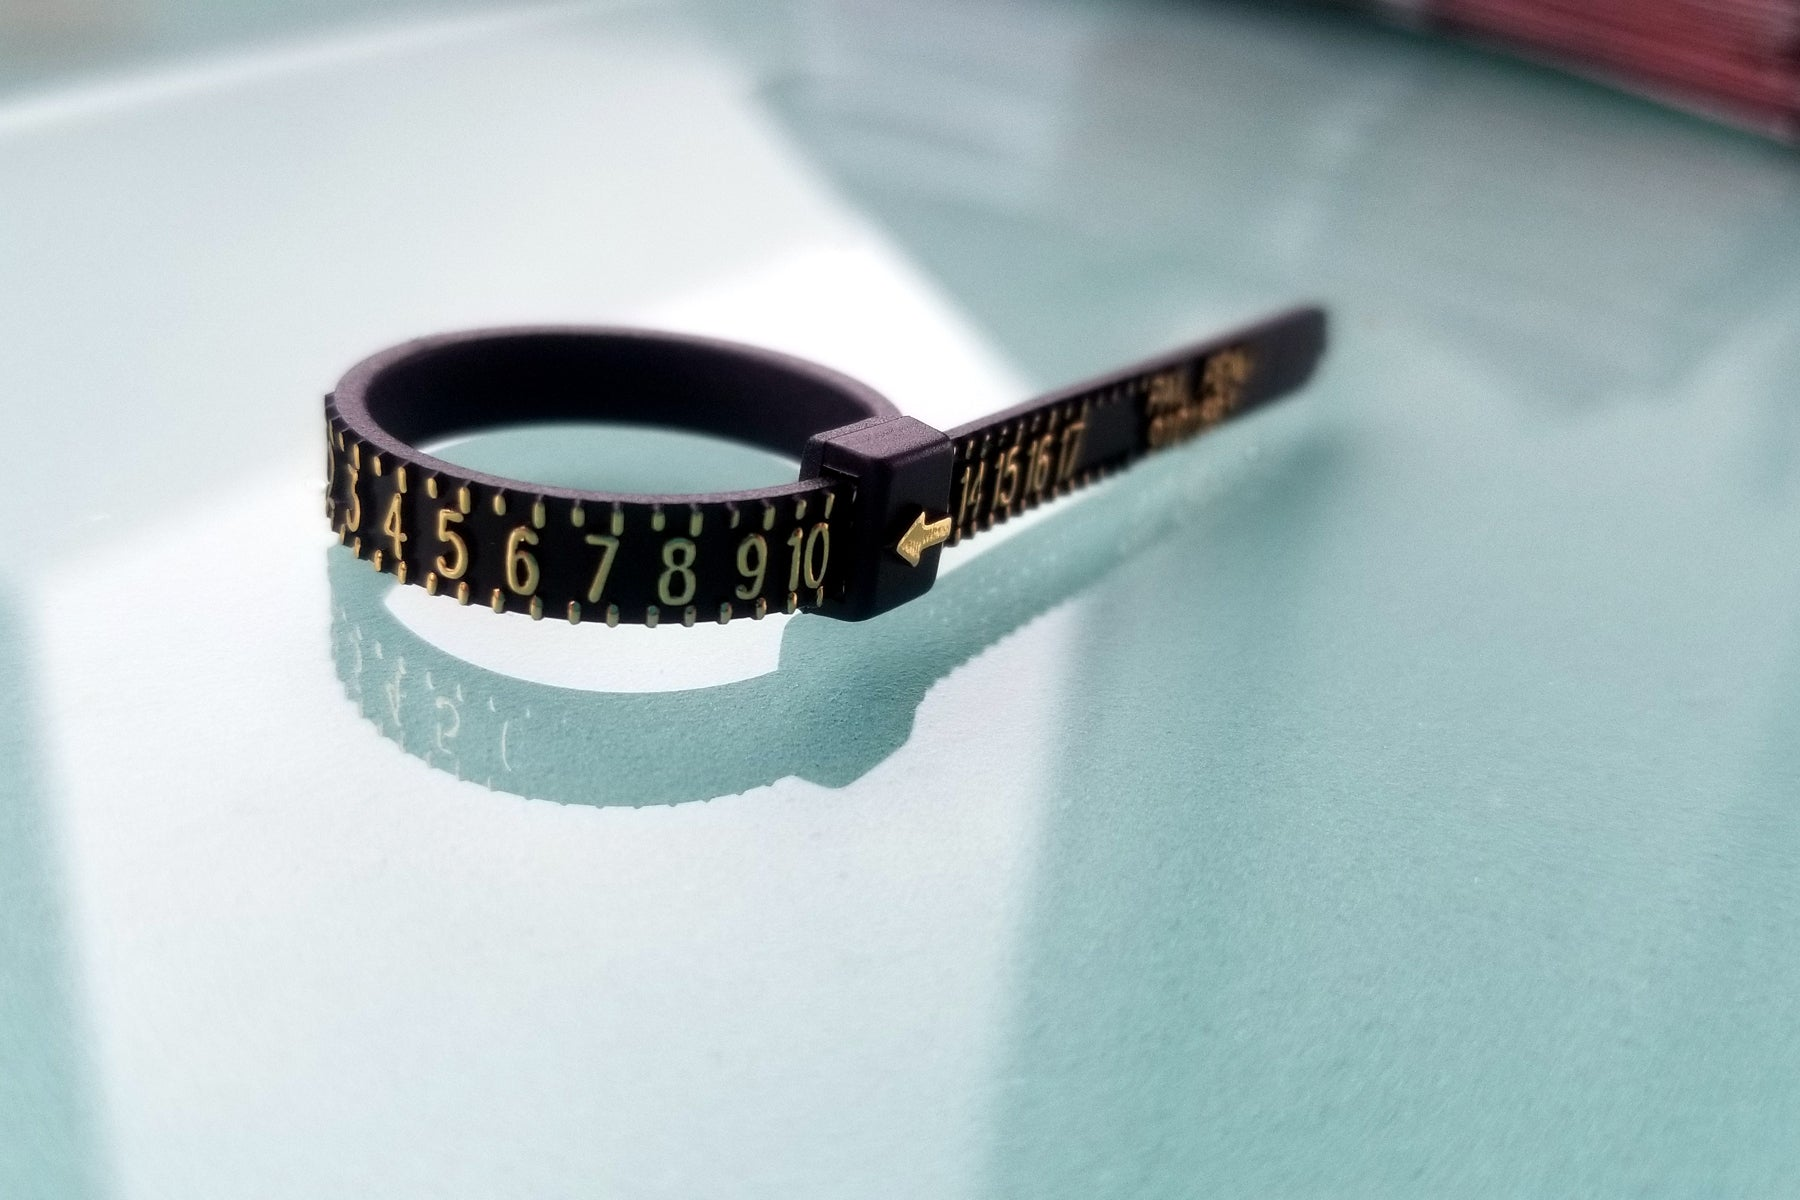 easy to use multi-size plastic ring sizer - black with gold numbers ring measuring tool